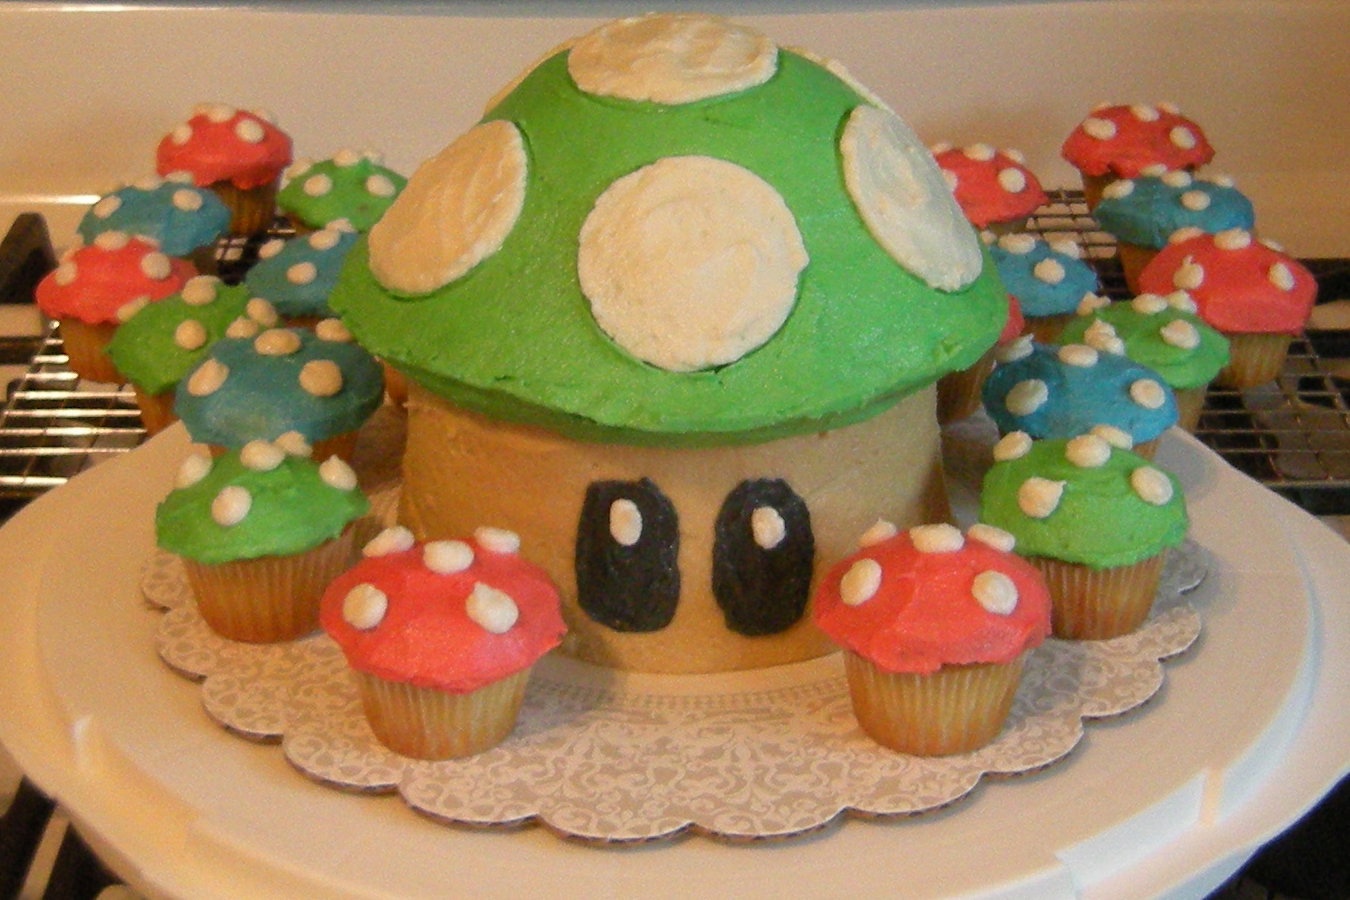 July 2010 : super easy cupcake decorating ideas - www.pureclipart.com